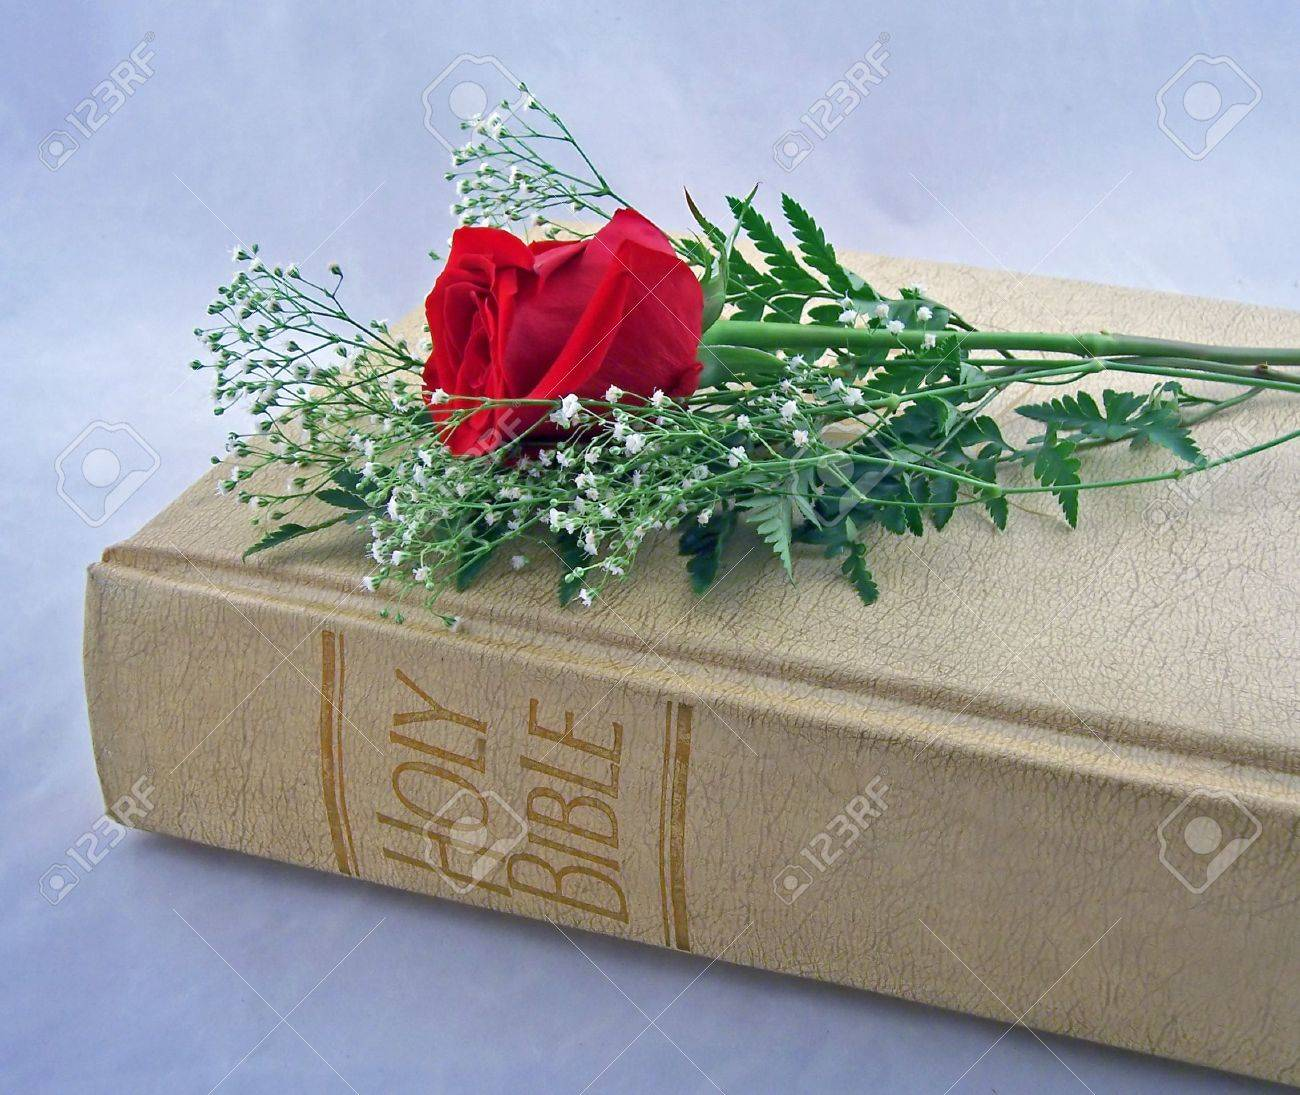 The Holy Bible With One Red Rose Stock Photo Picture And Royalty